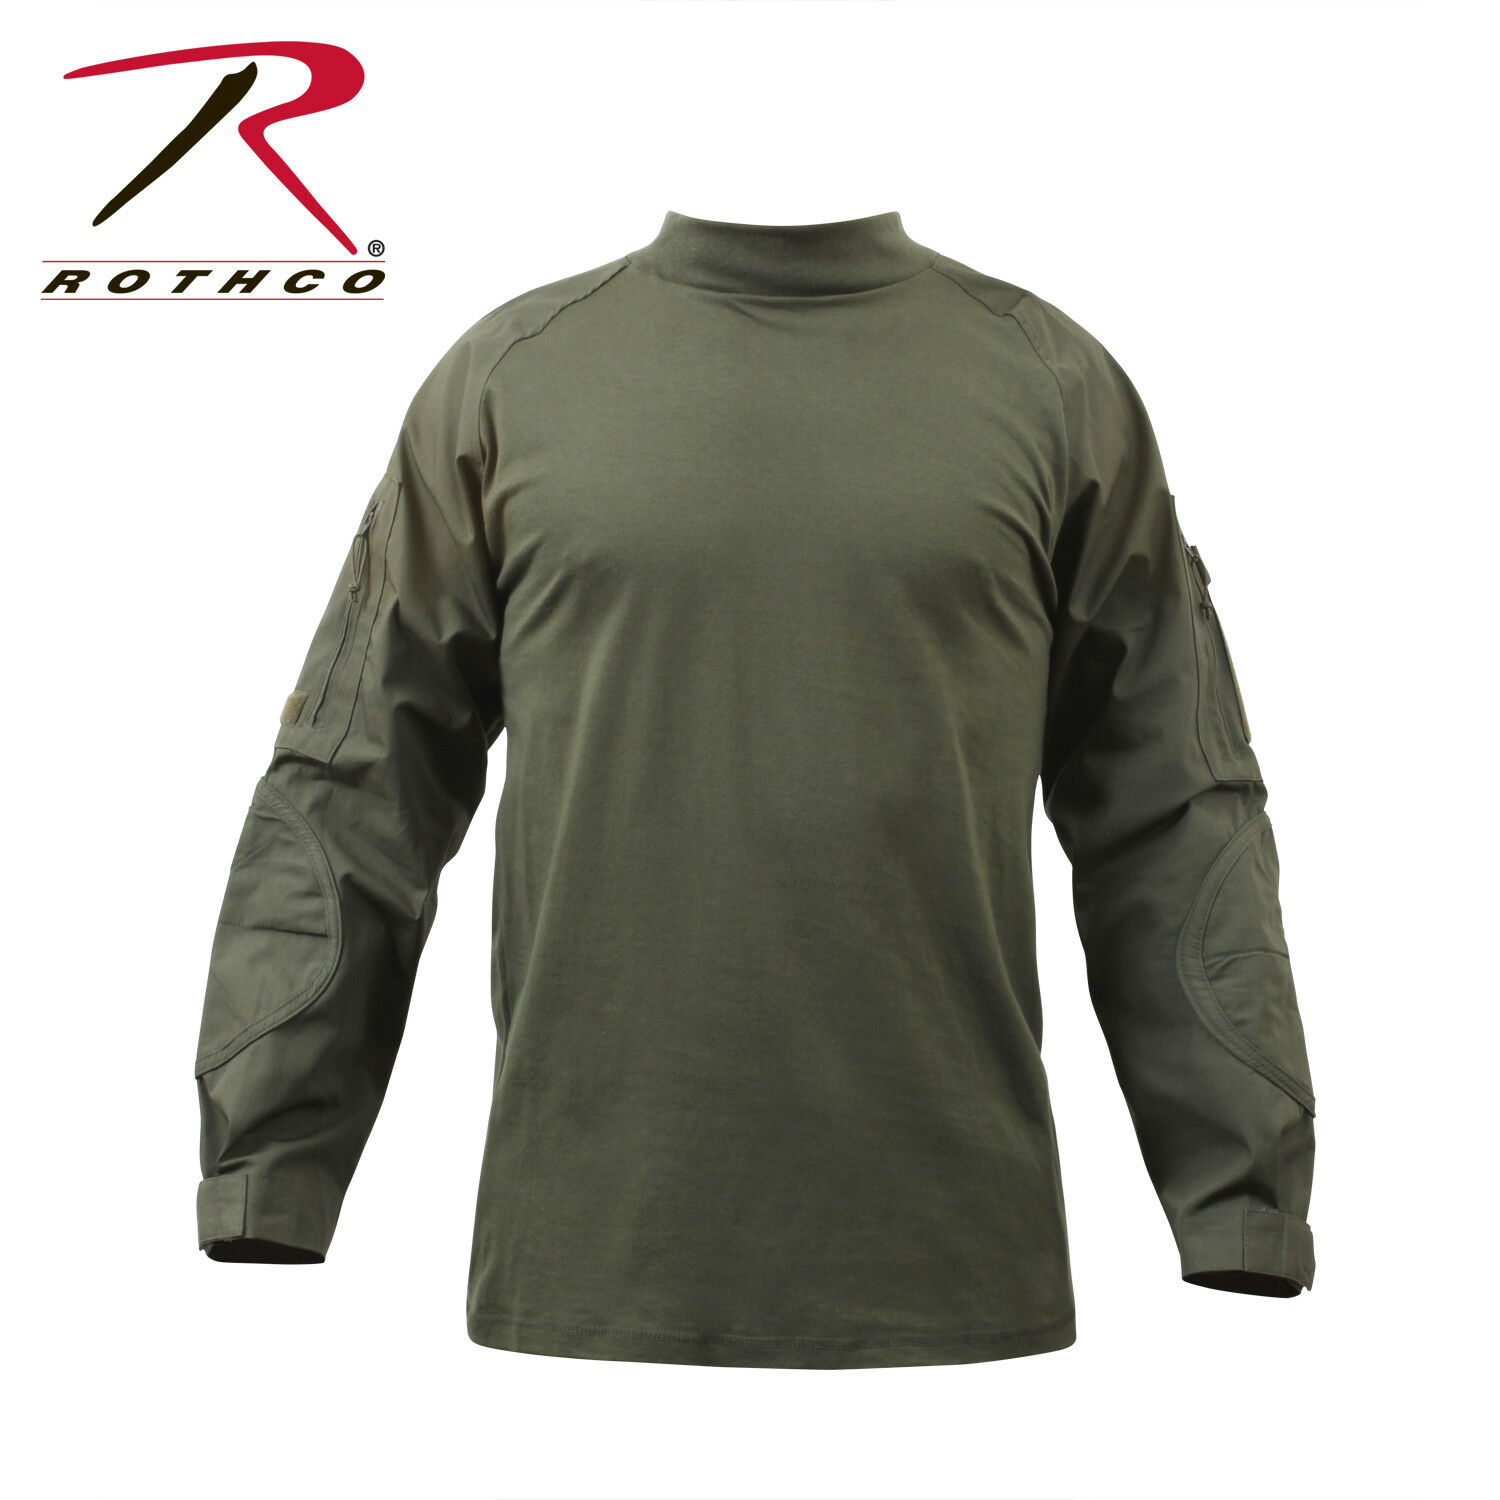 redhco Military Combat Shirt, OD Green (S)